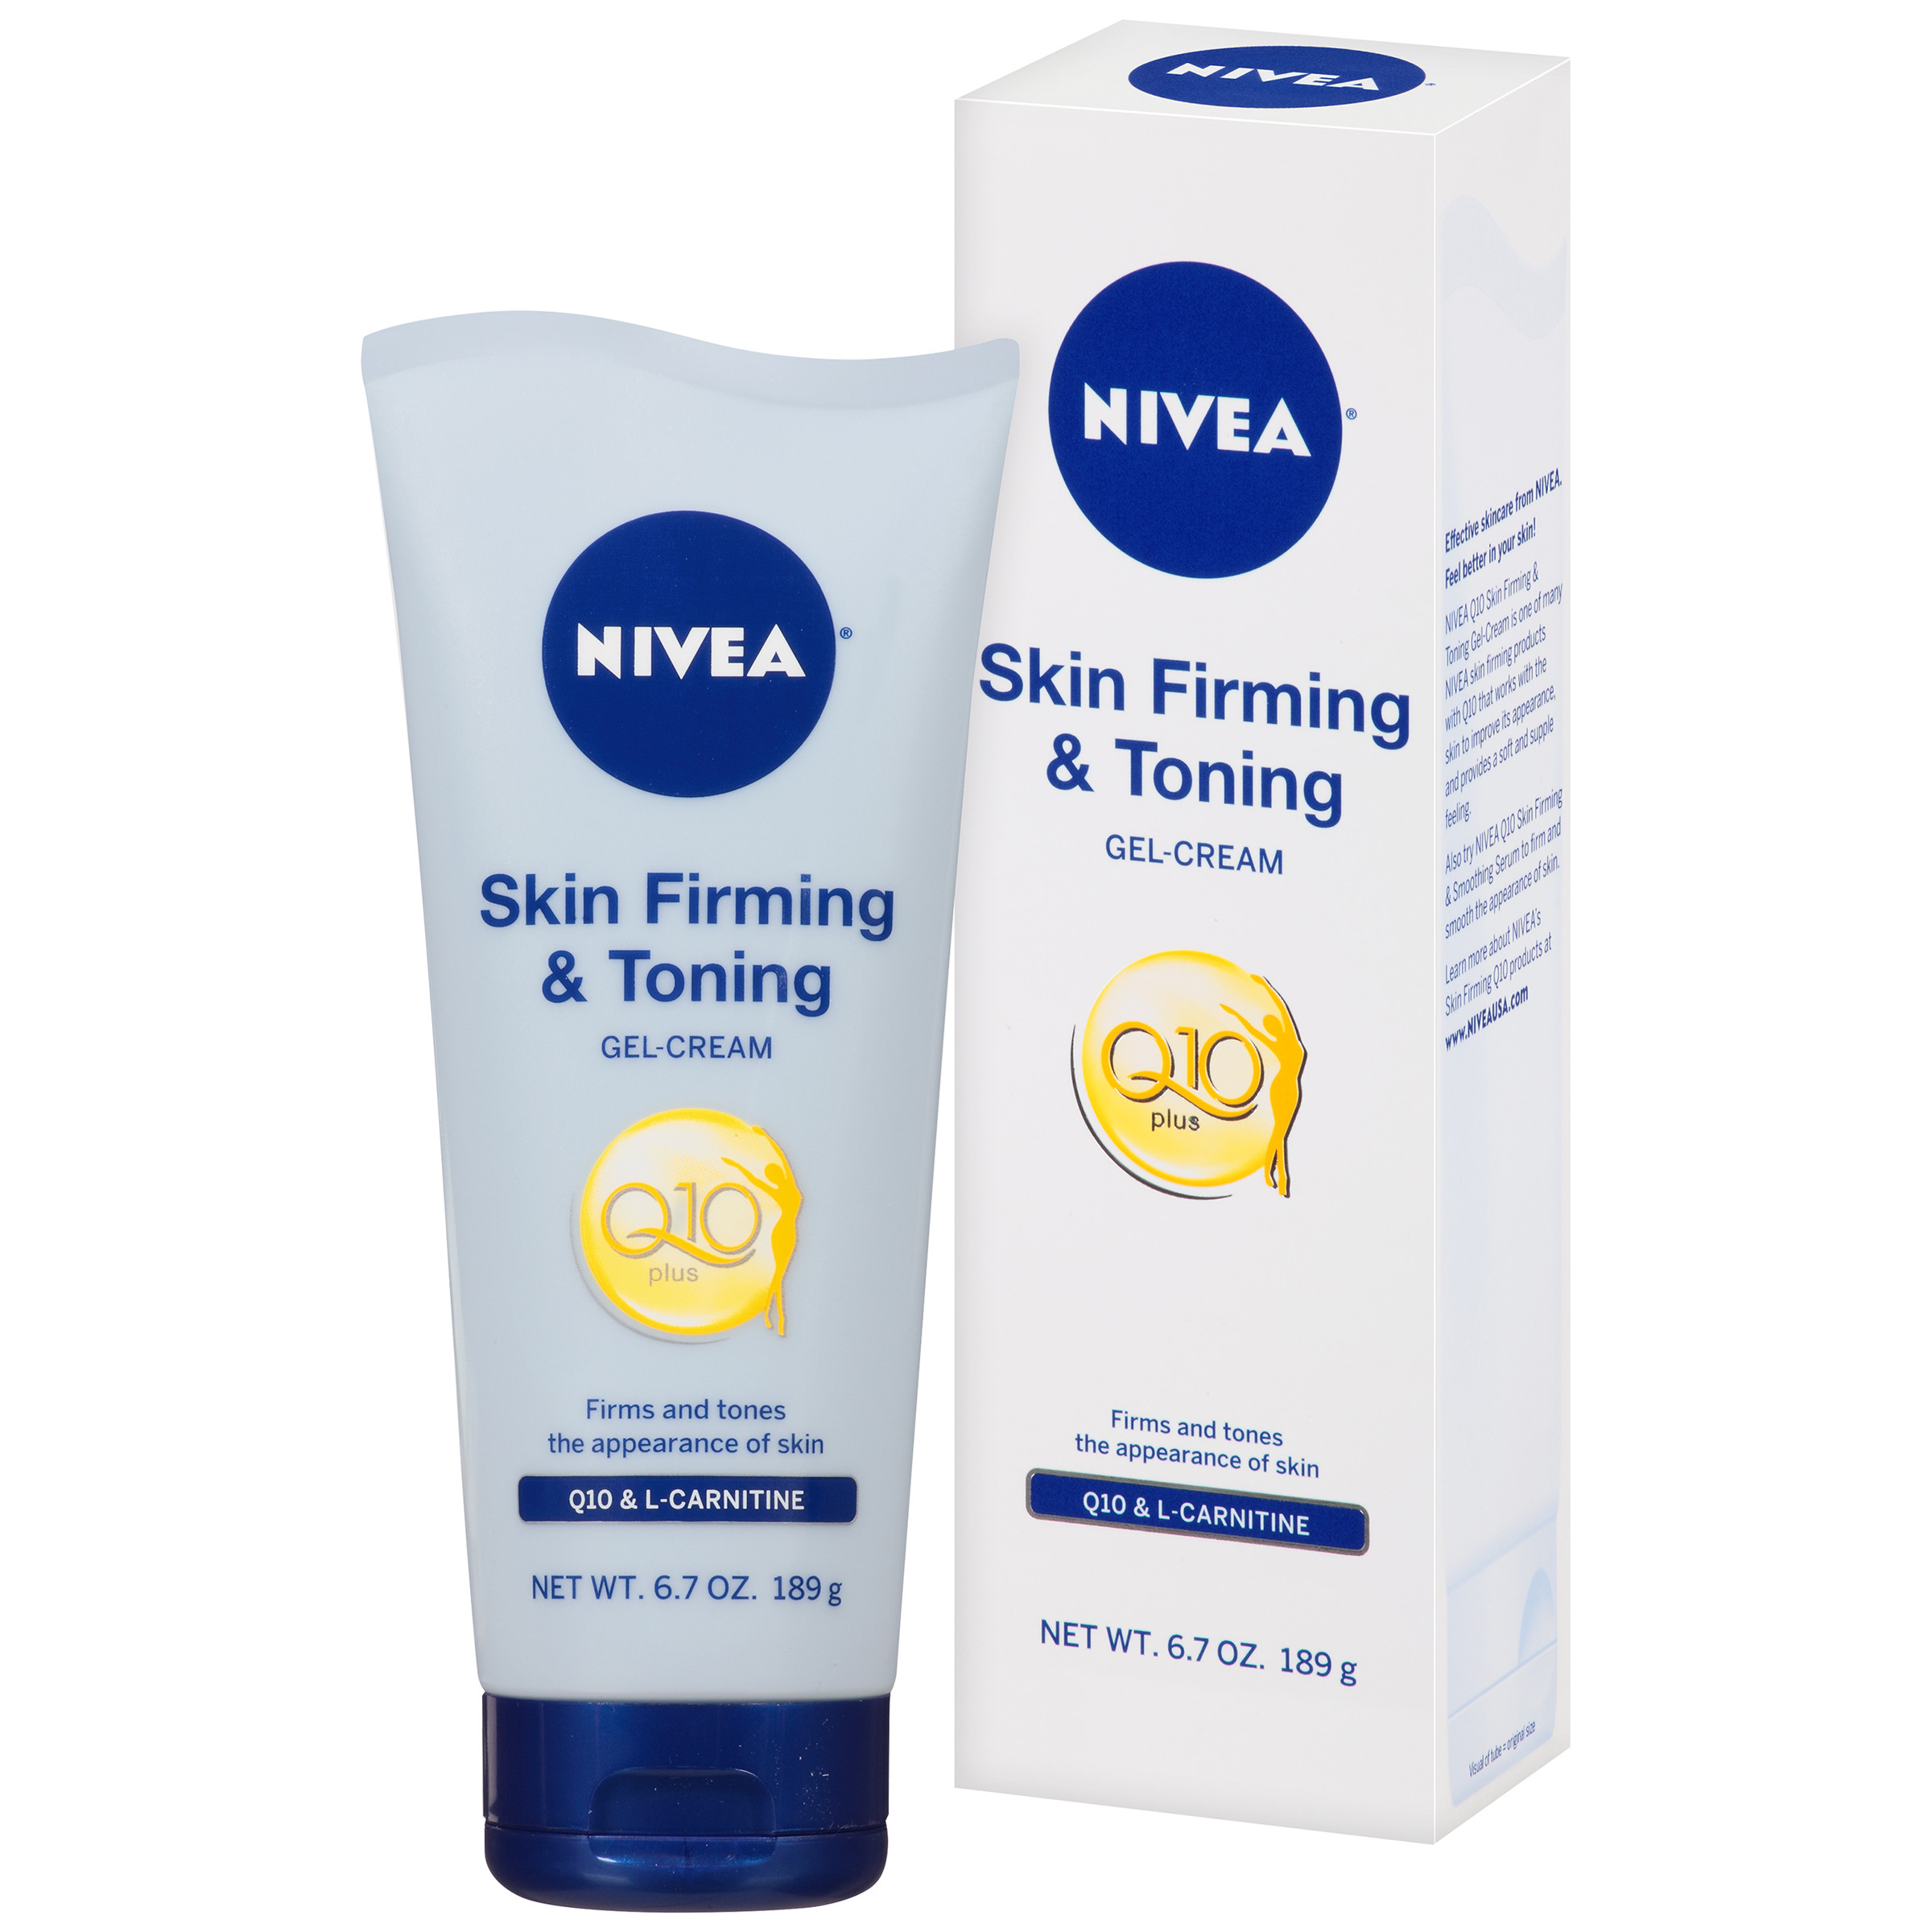 NIVEA�� Skin Firming & Toning Gel-Cream 6.7 oz.